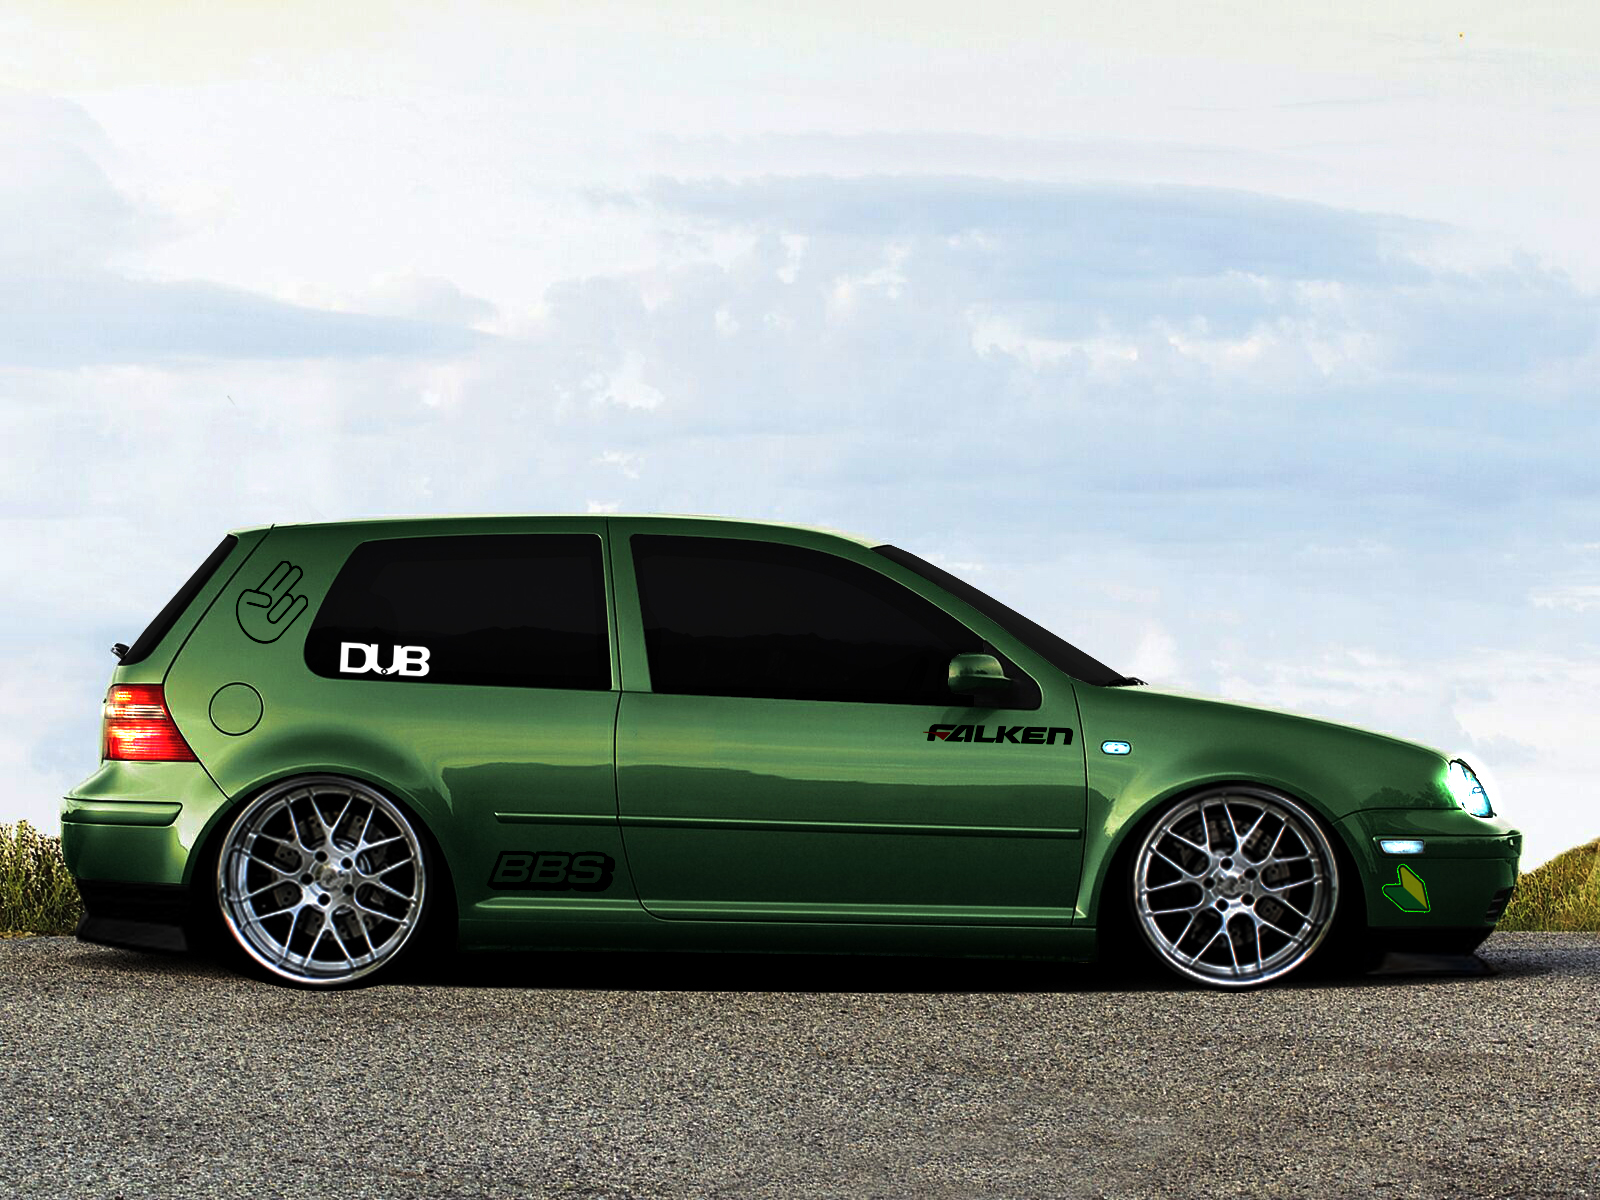 volkswagen golf tuning by turkiye2009 on deviantart. Black Bedroom Furniture Sets. Home Design Ideas